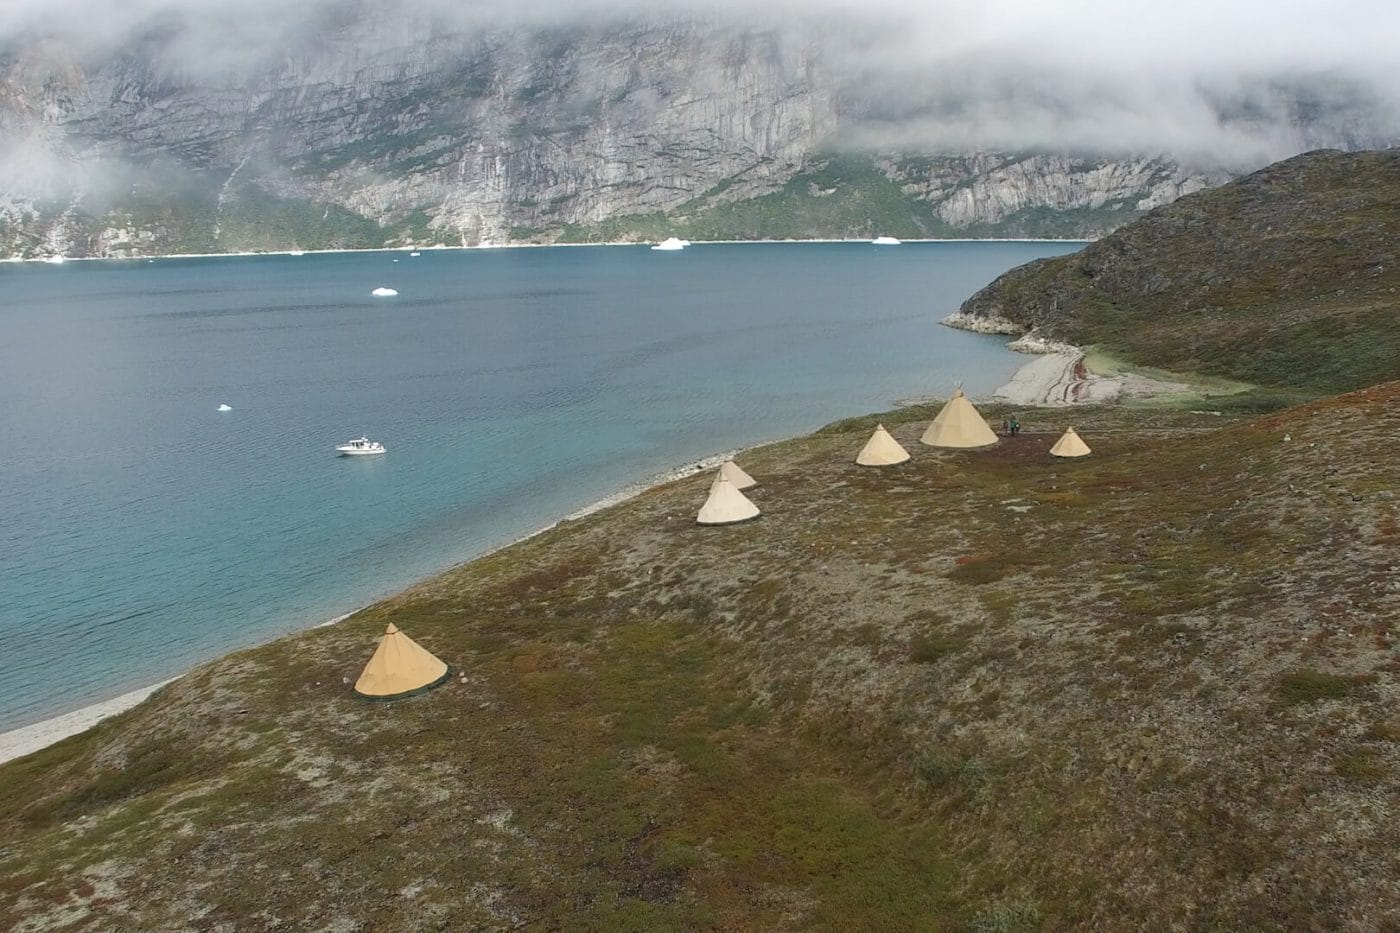 Camp at the waterfront viewed from above. Photo by Arctic Nomad, Visit Greenland